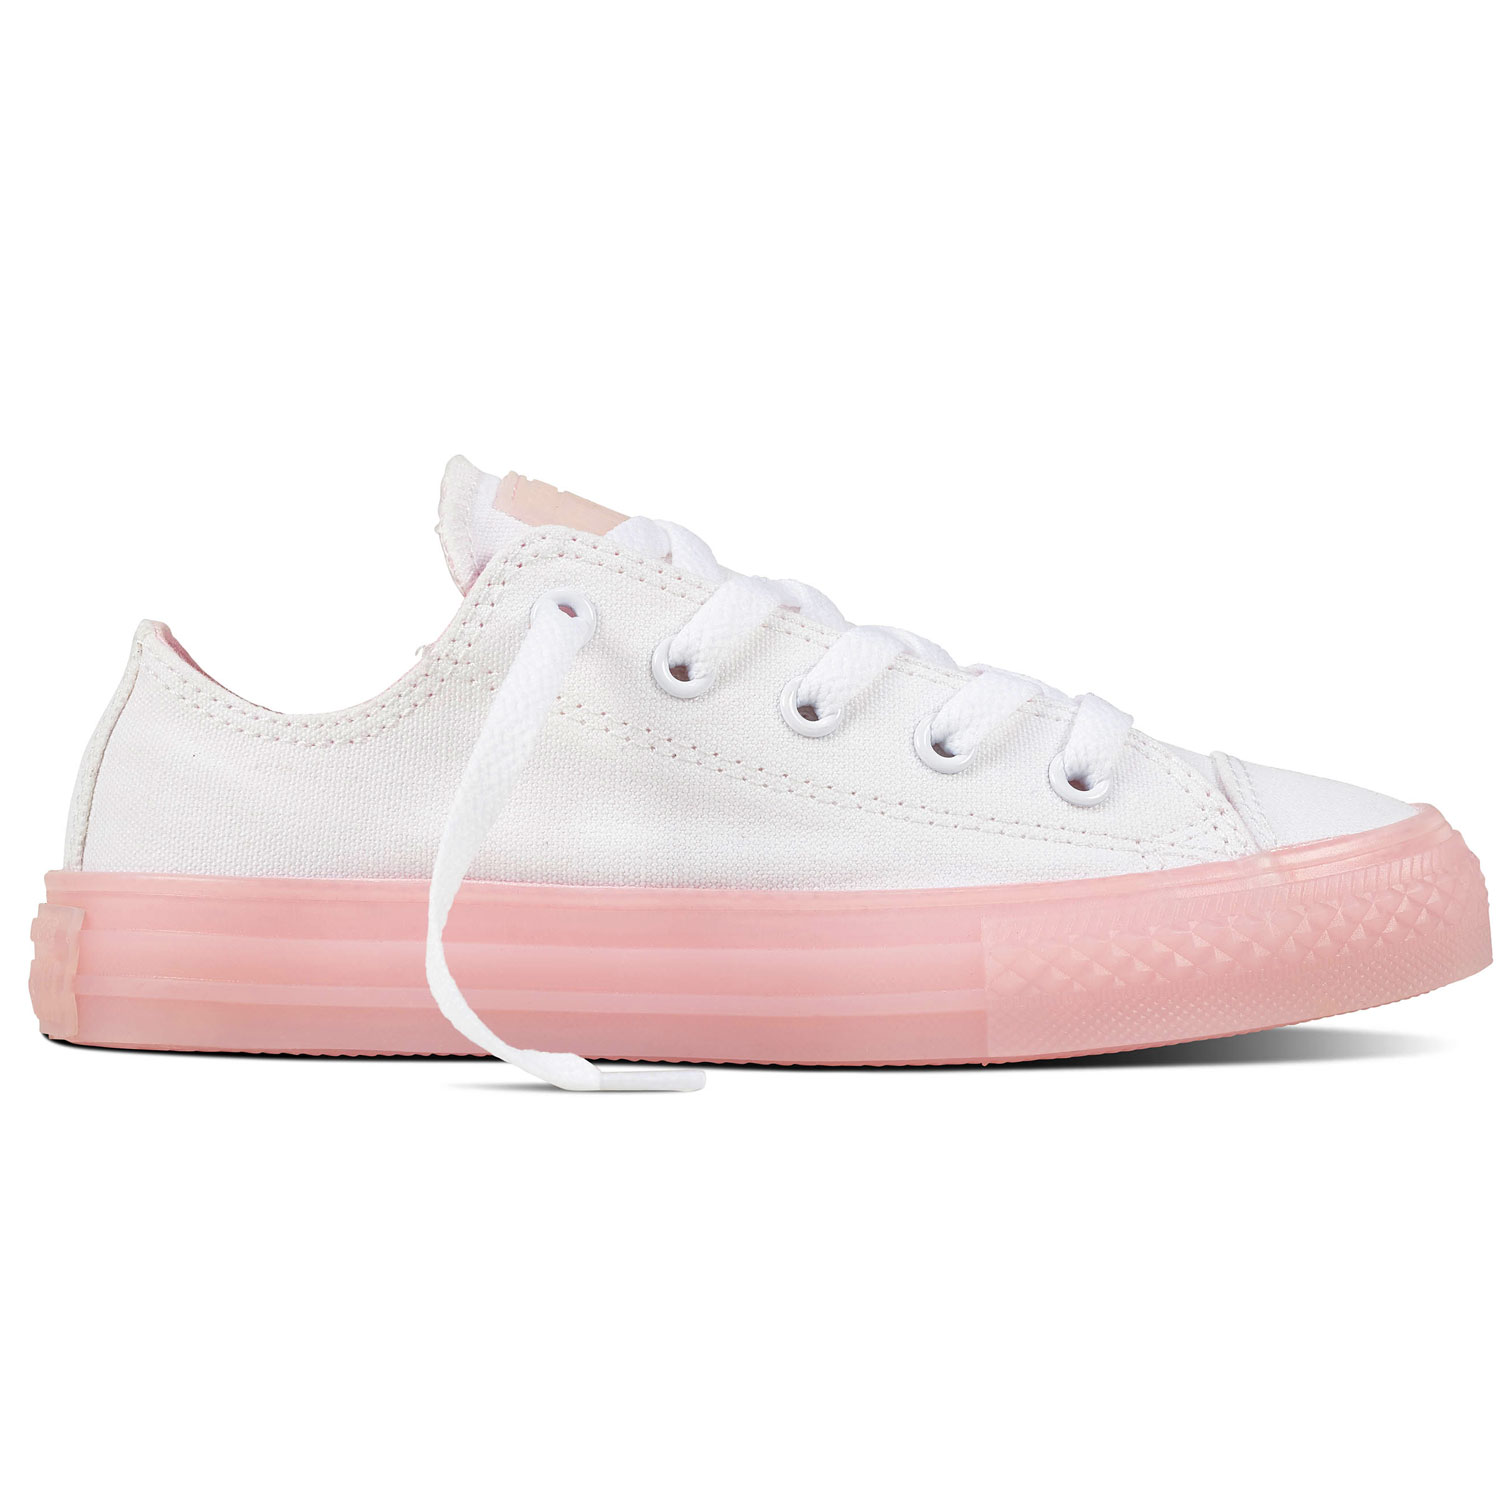 f442377493eb0 Converse All Star OX Chuck Taylor Chucks Kinder Damen weiß rosa 660719C